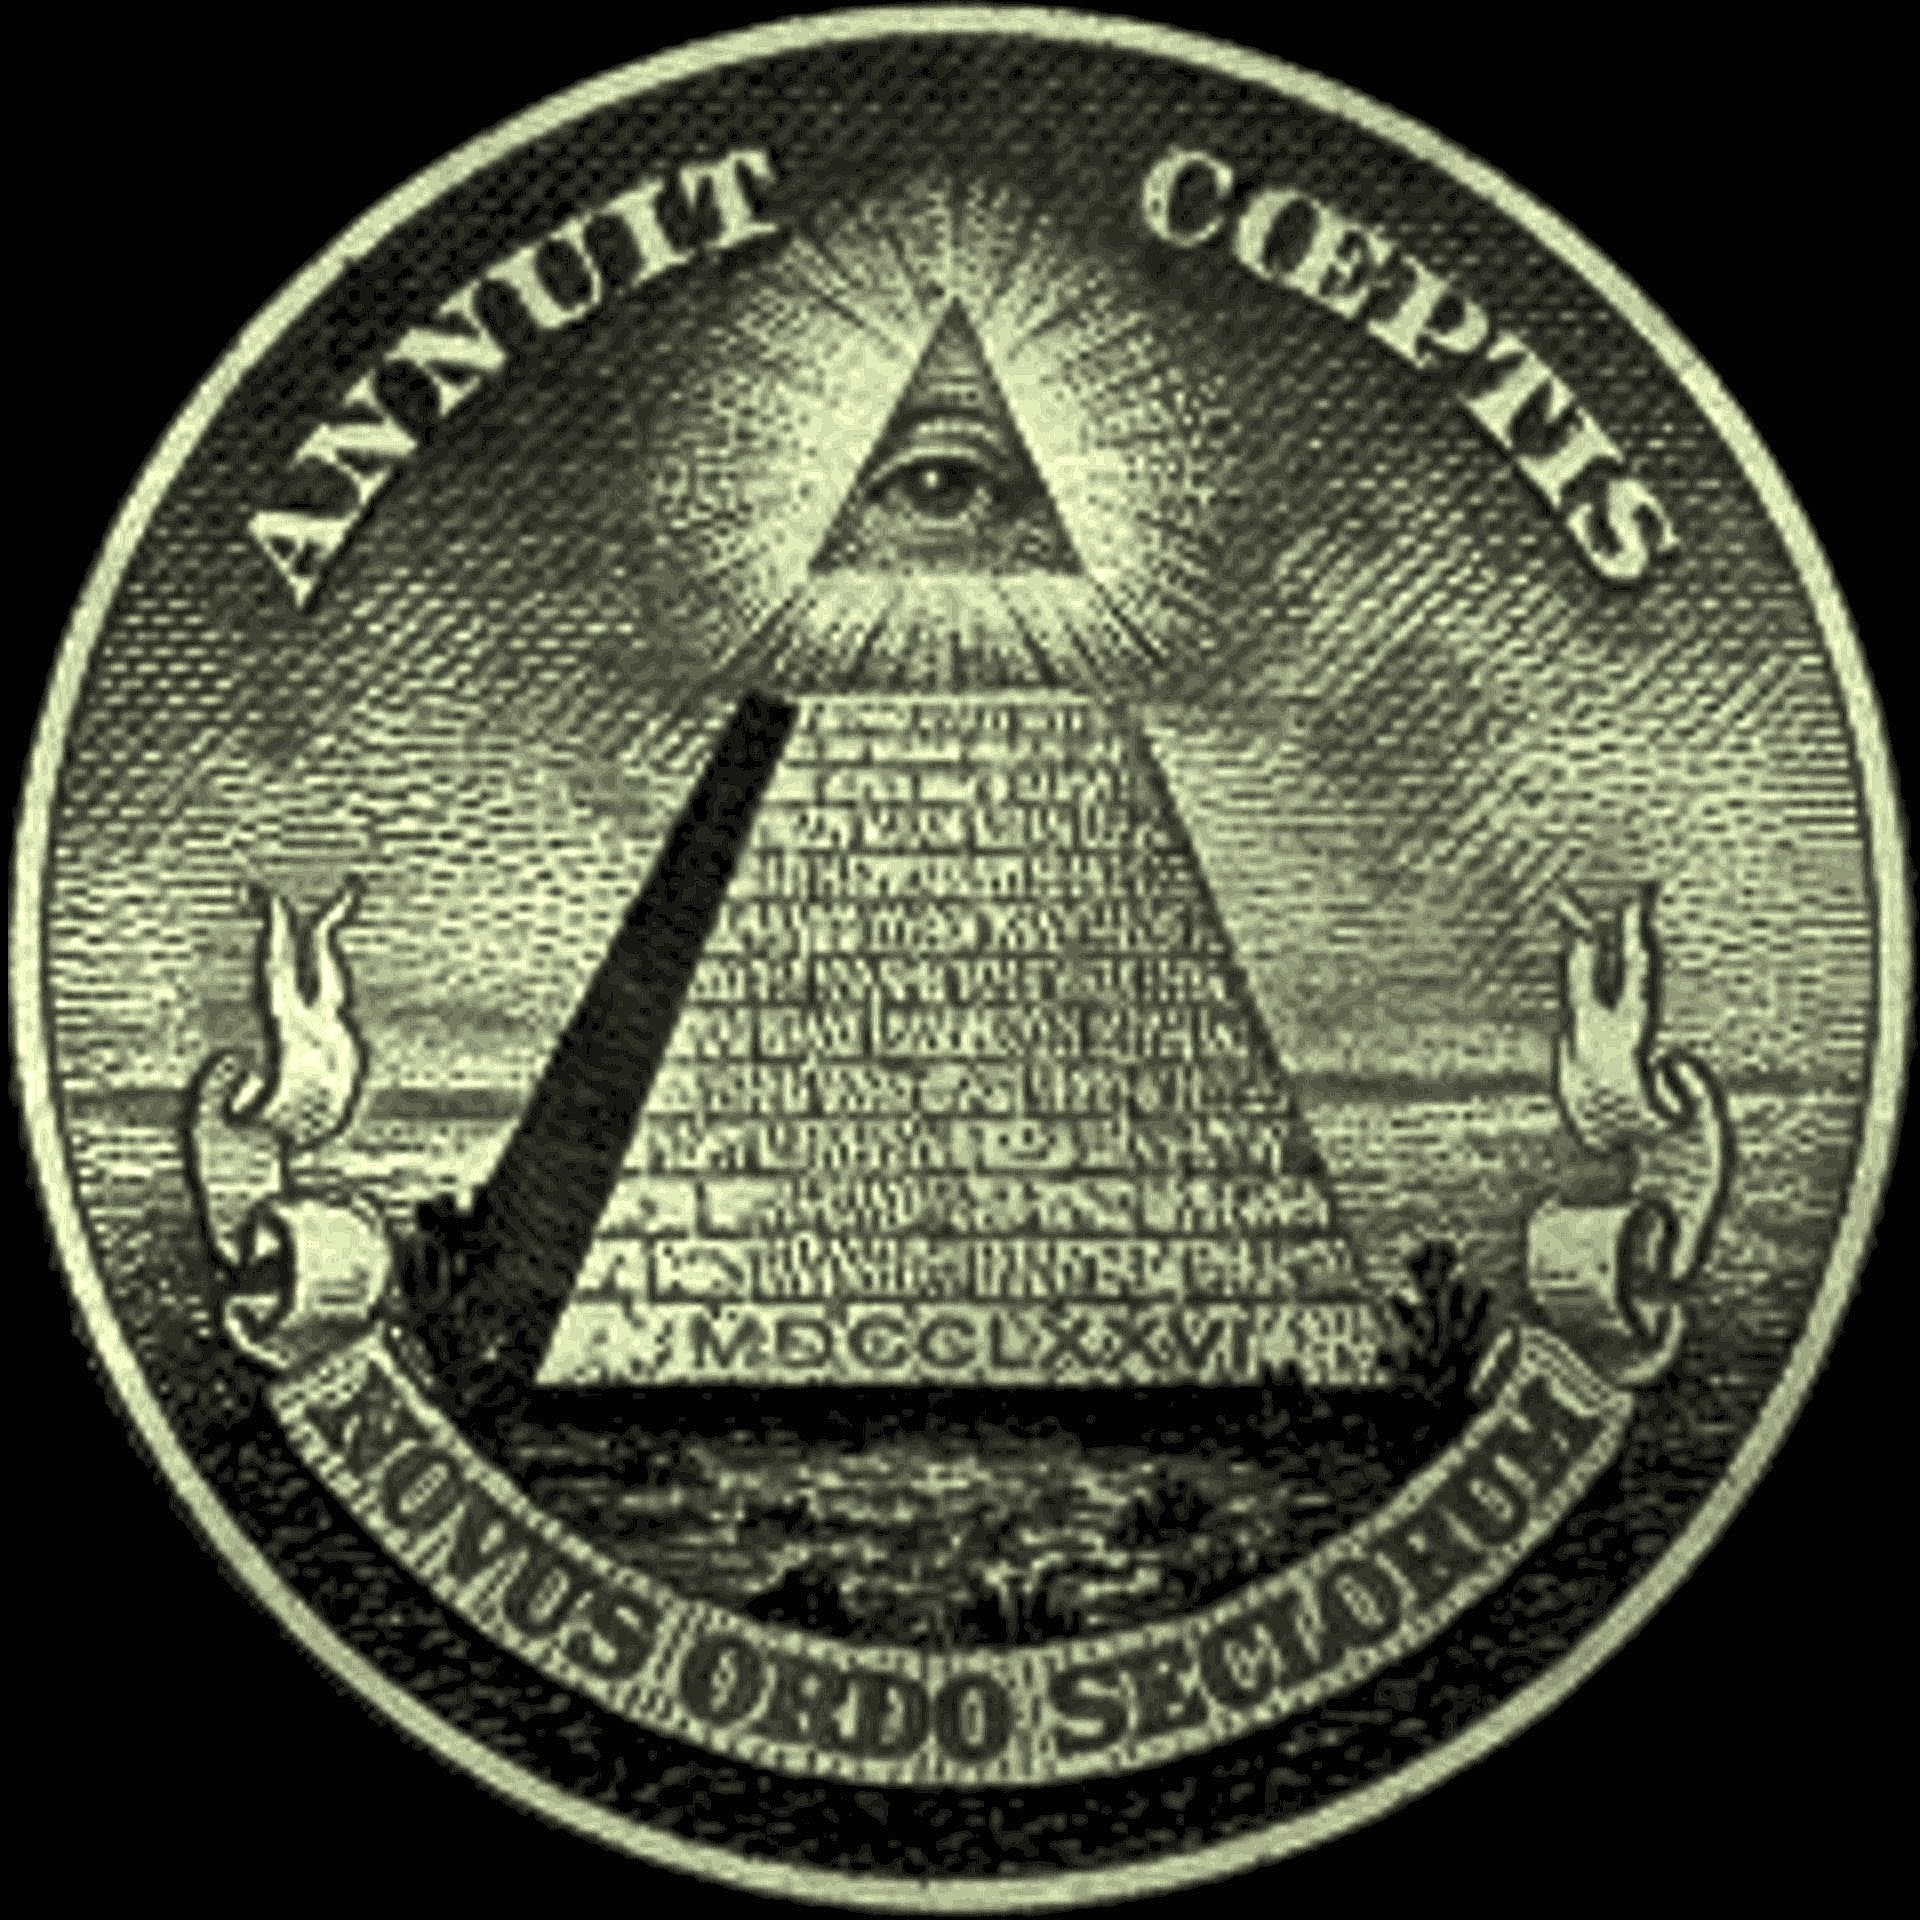 All On The Illuminati: On The Back Of The Dollar Bill Is A Symbol Of The All